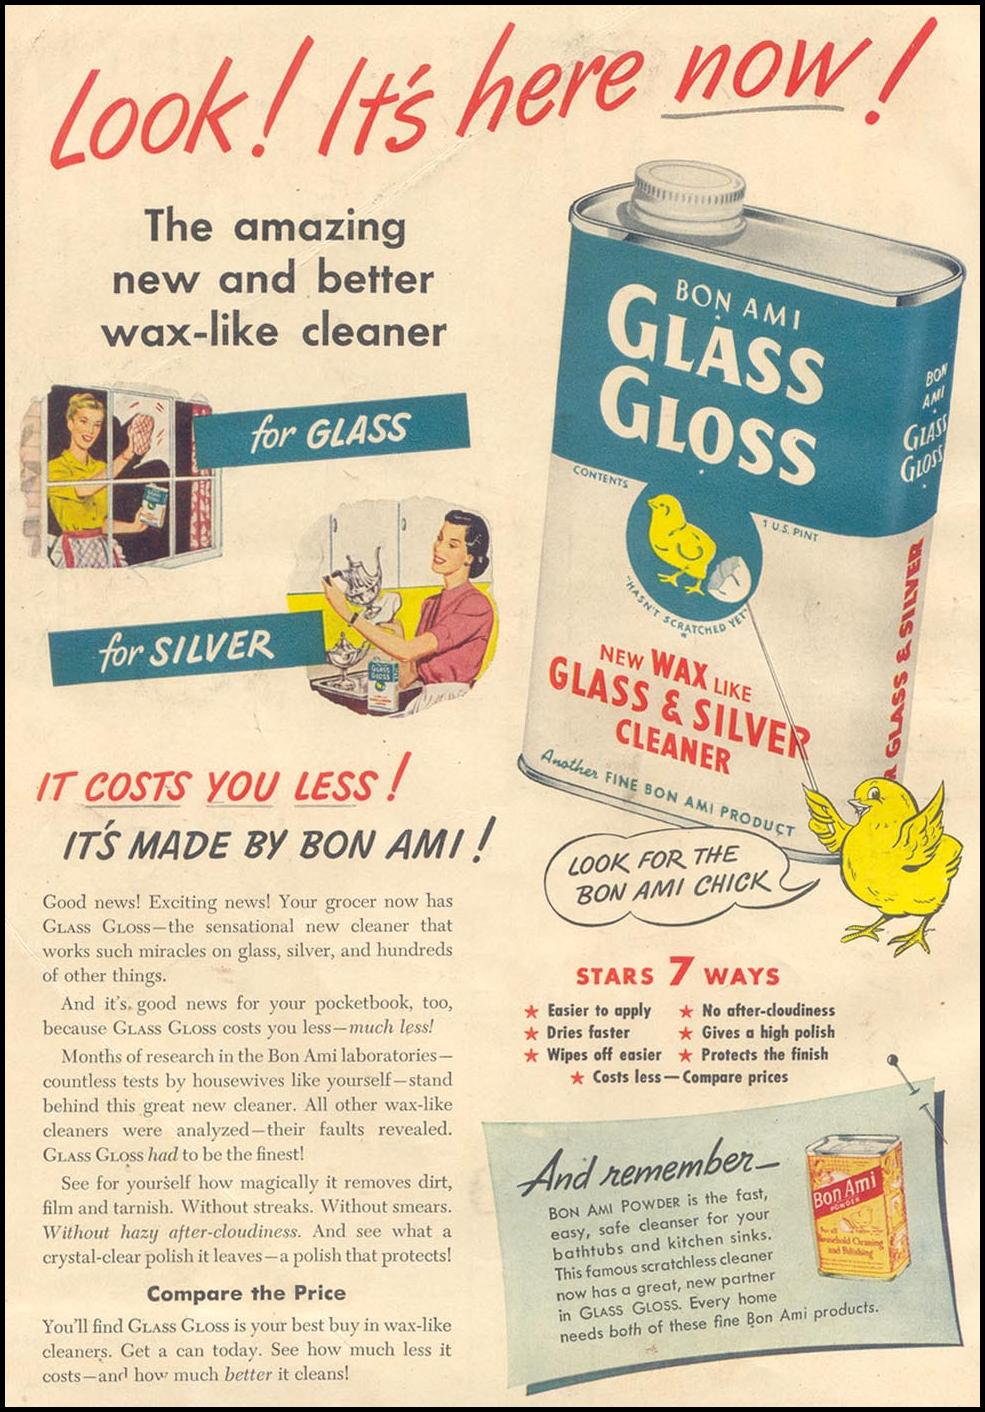 BON AMI GLASS GLOSS